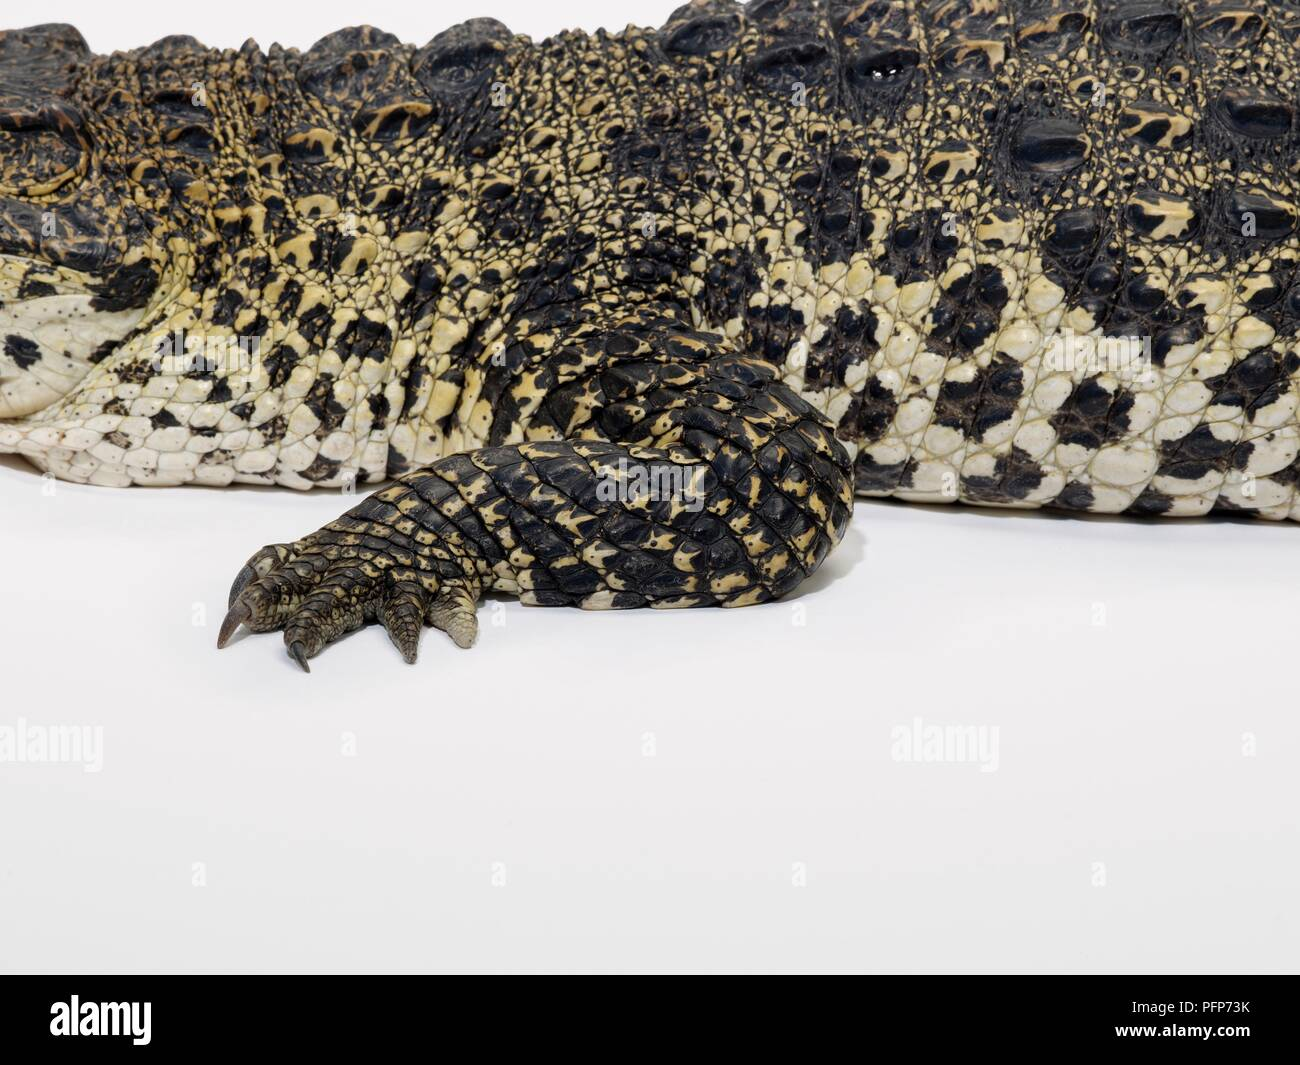 Cuban Crocodile (Crocodylus rhombifer) skin, leg and foot showing natural pattern - Stock Image